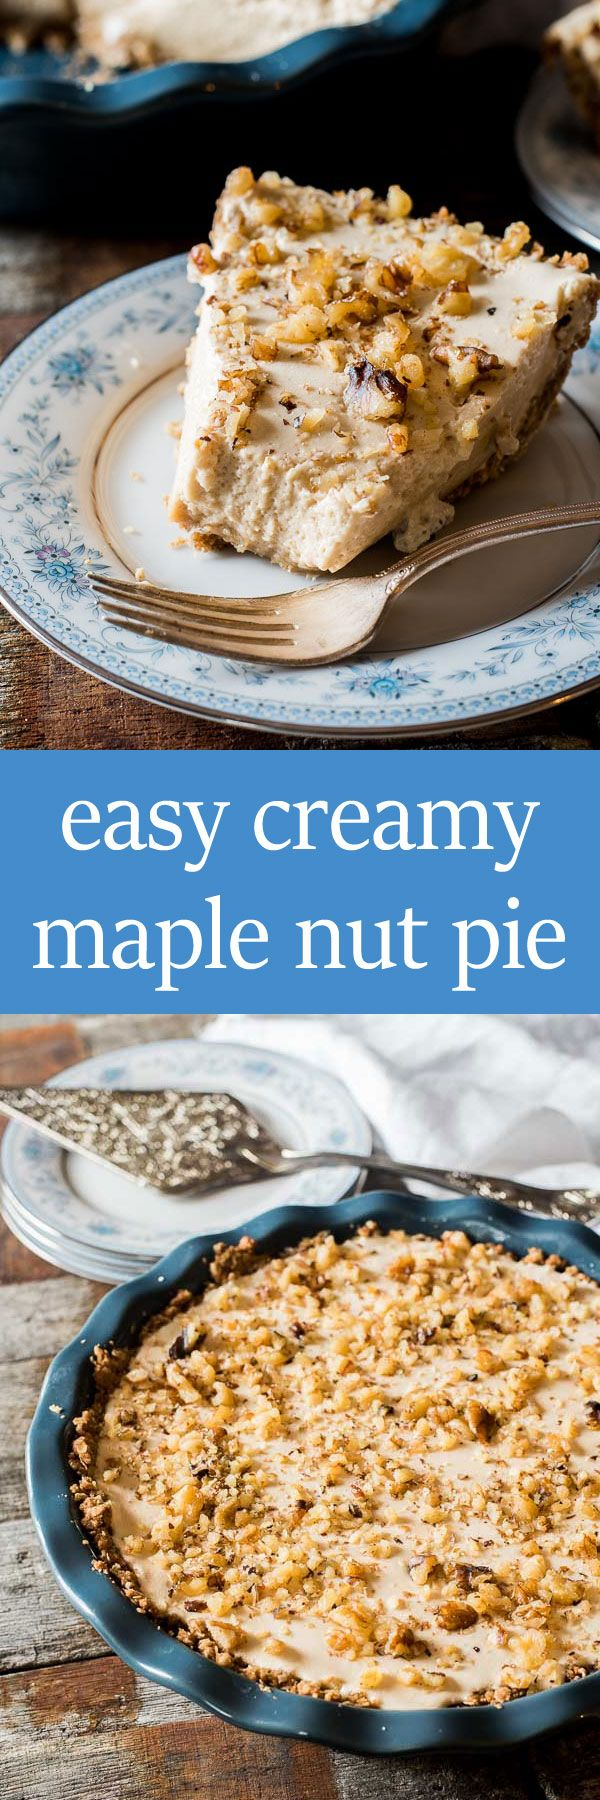 Maple syrup takes center stage in this no-bake, easy creamy maple nut pie. This classic Amish pie recipe tastes like melted ice cream topped with walnuts.